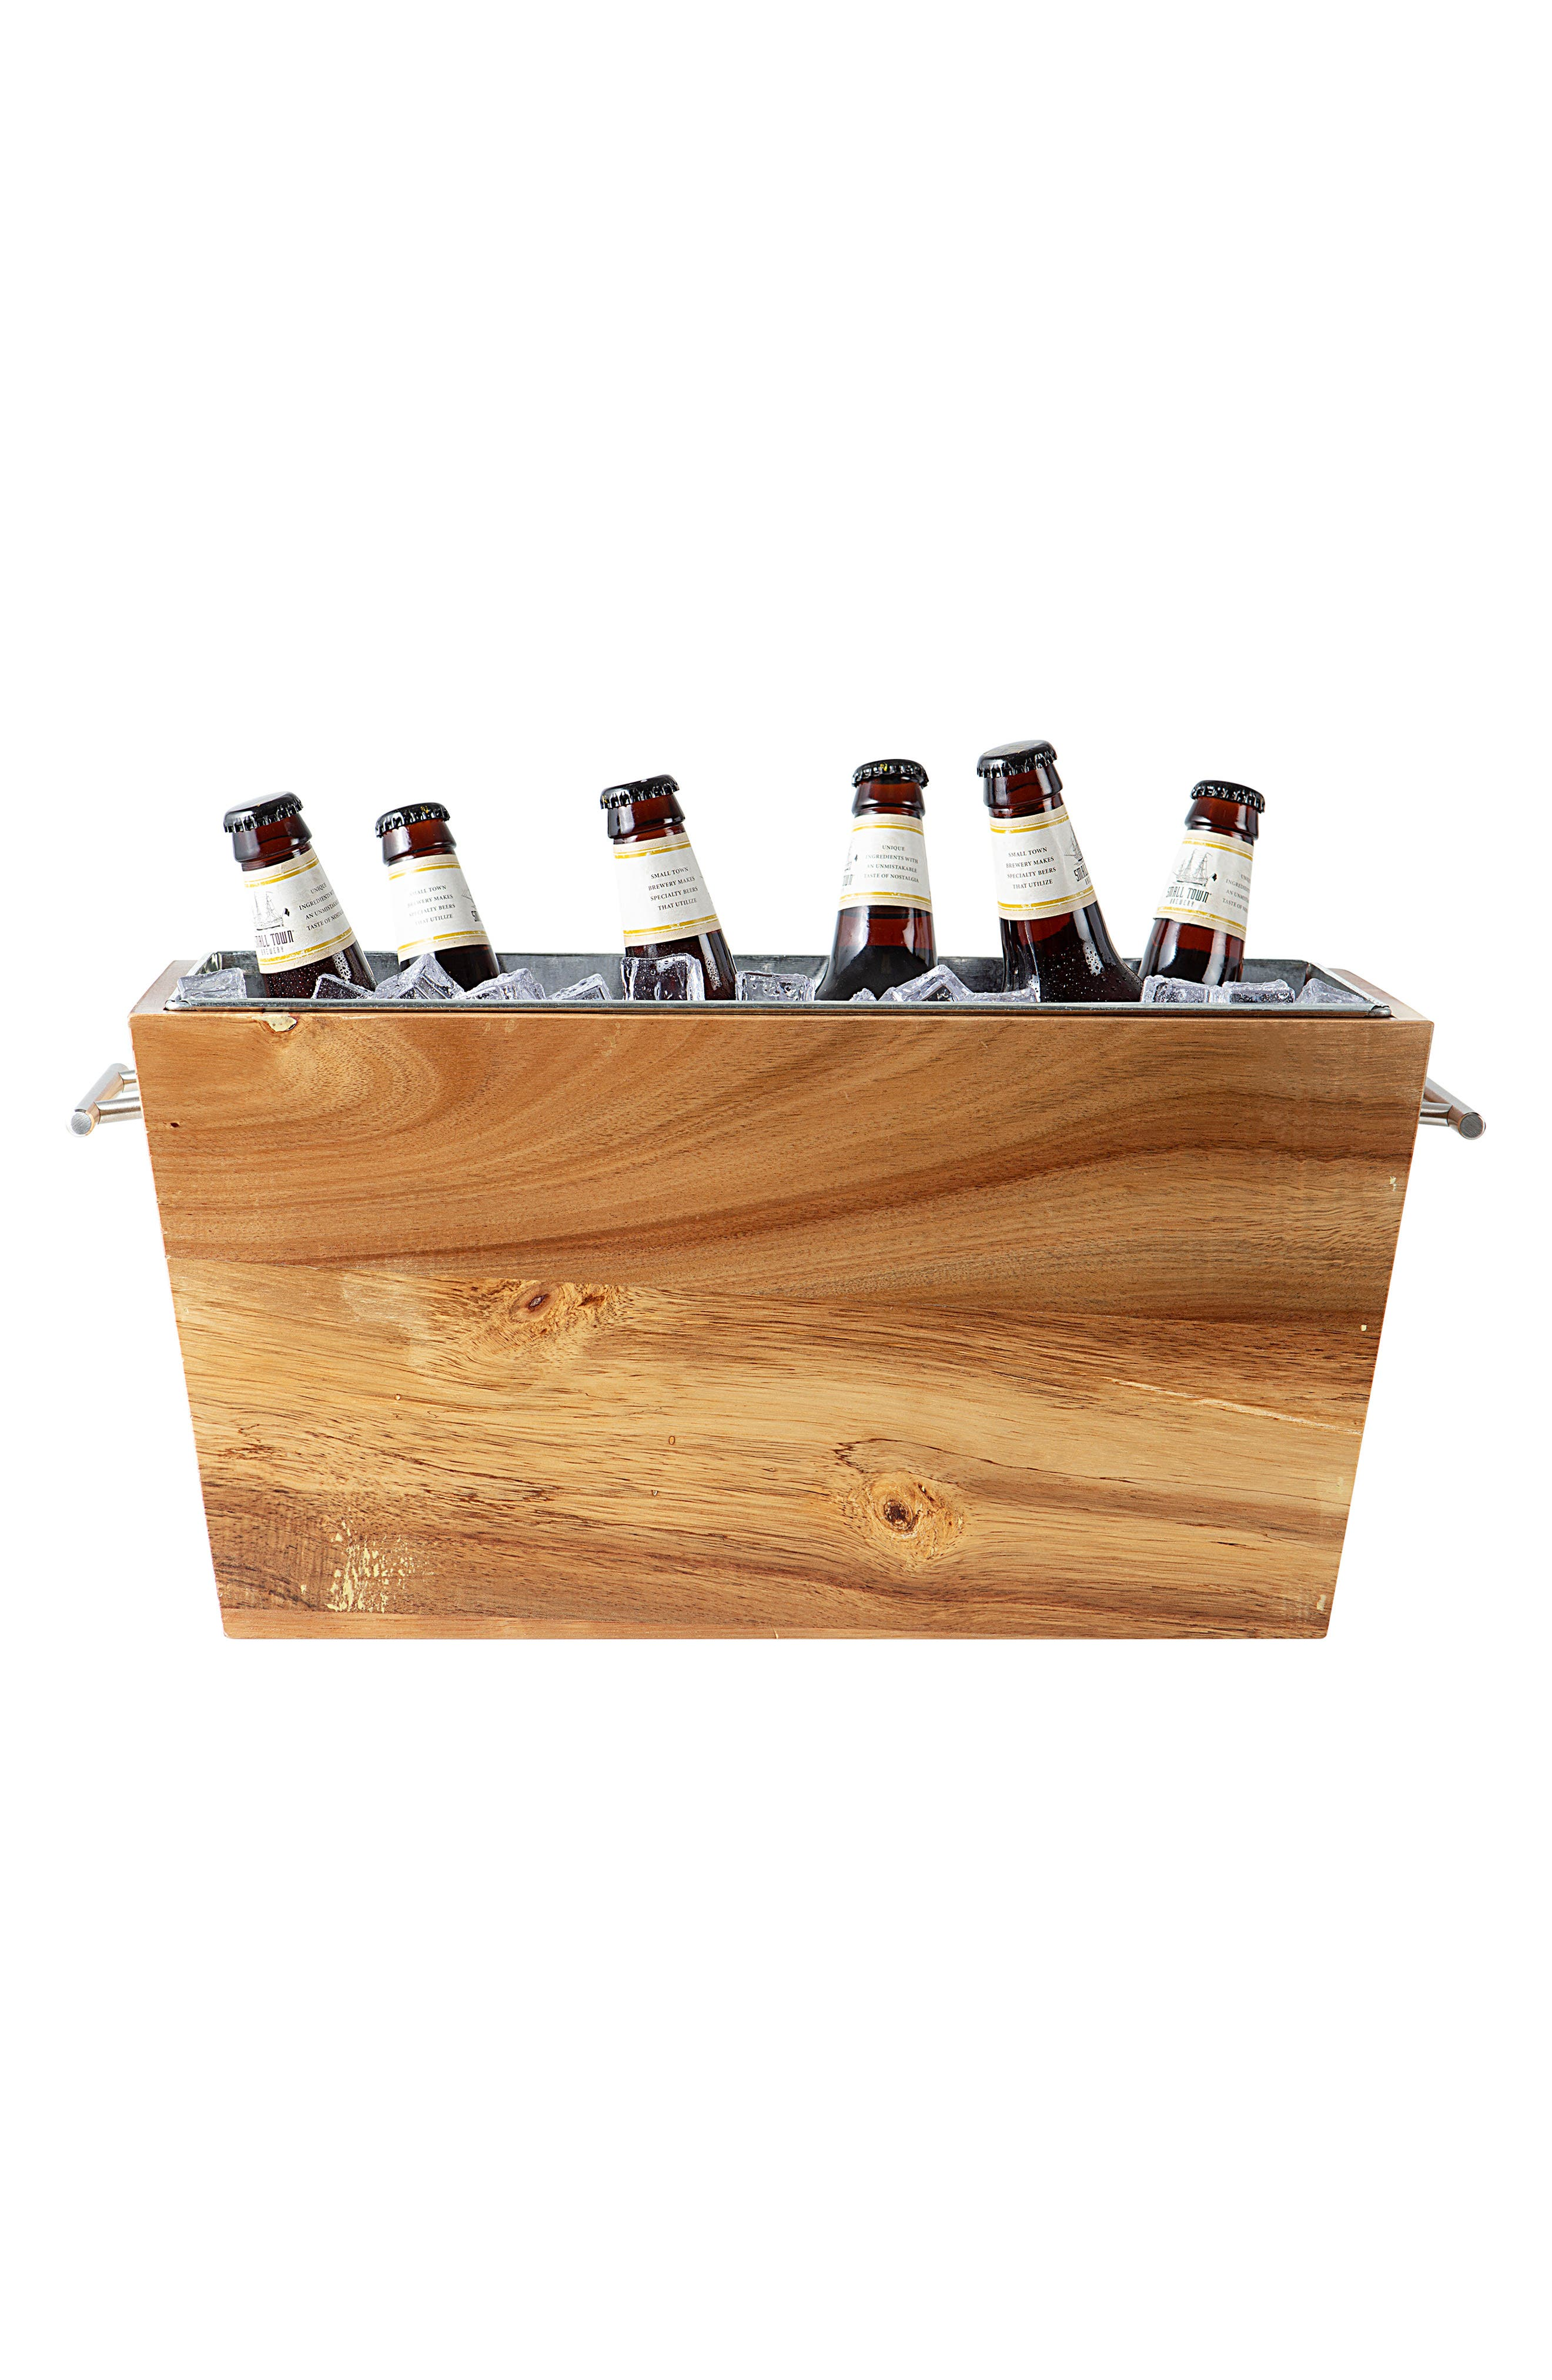 Monogram Wood Beverage Trough,                         Main,                         color, 200